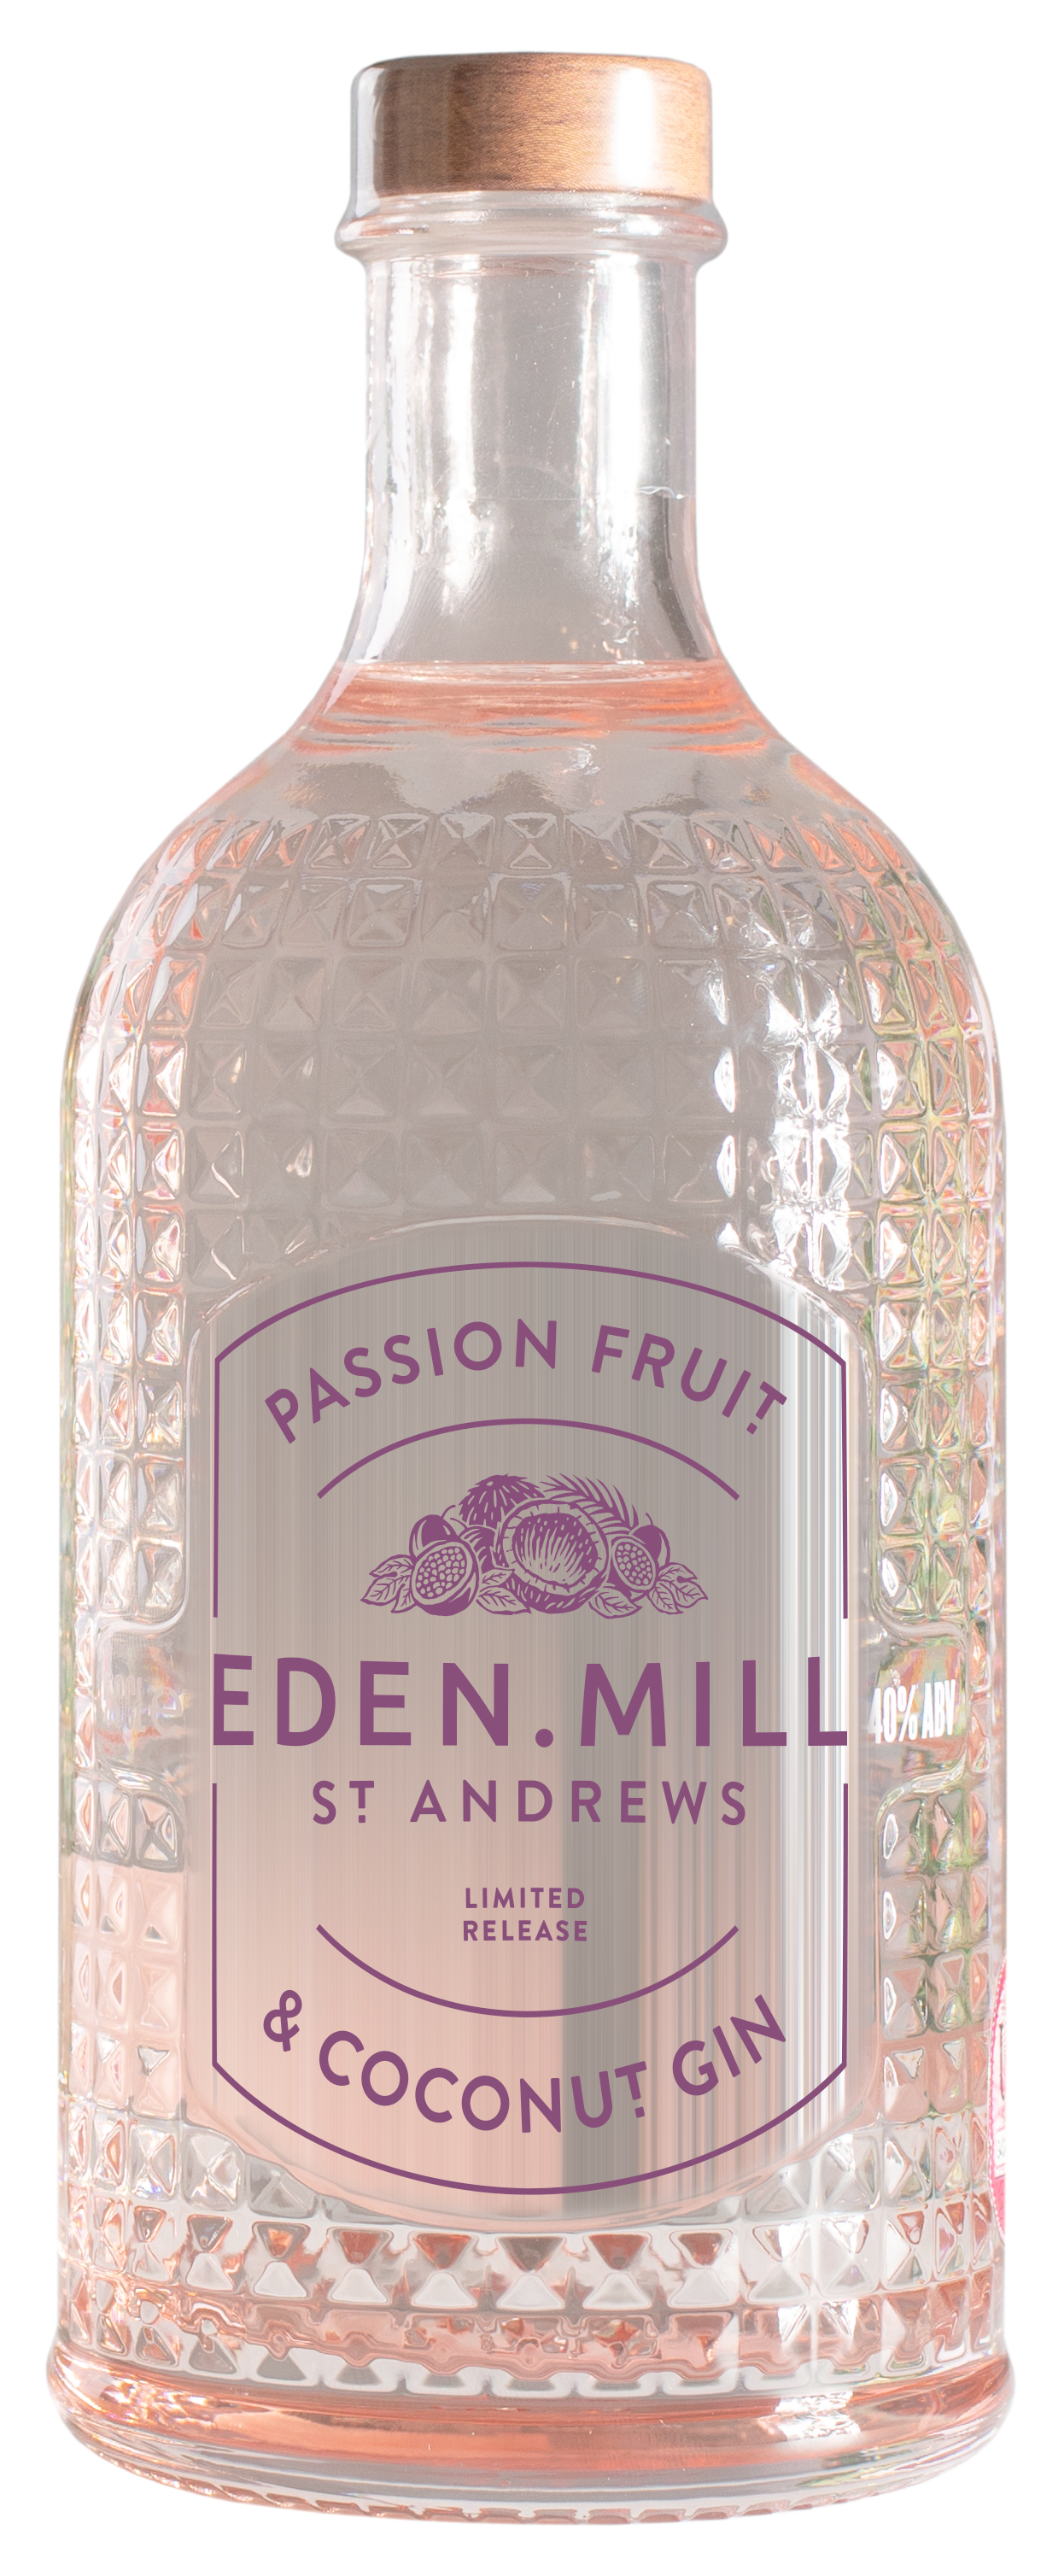 Passion Fruit & Coconut Gin | Eden Mill Distillery St Andrews